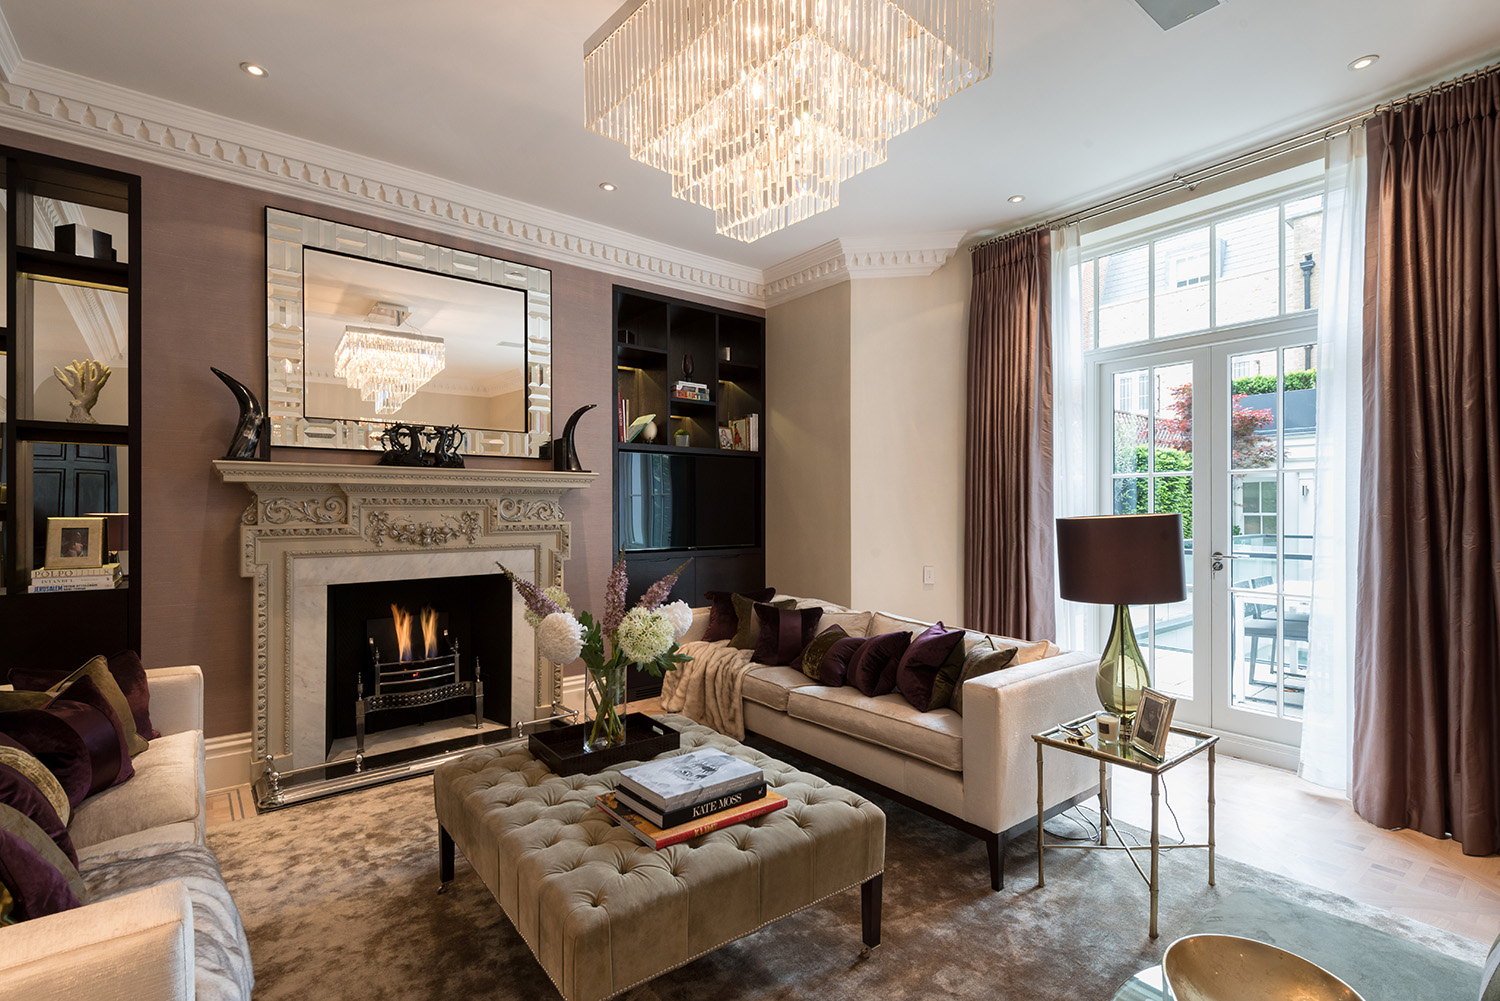 Mayfair family home w1 design box london luxury interior design services - Housing interiors ...